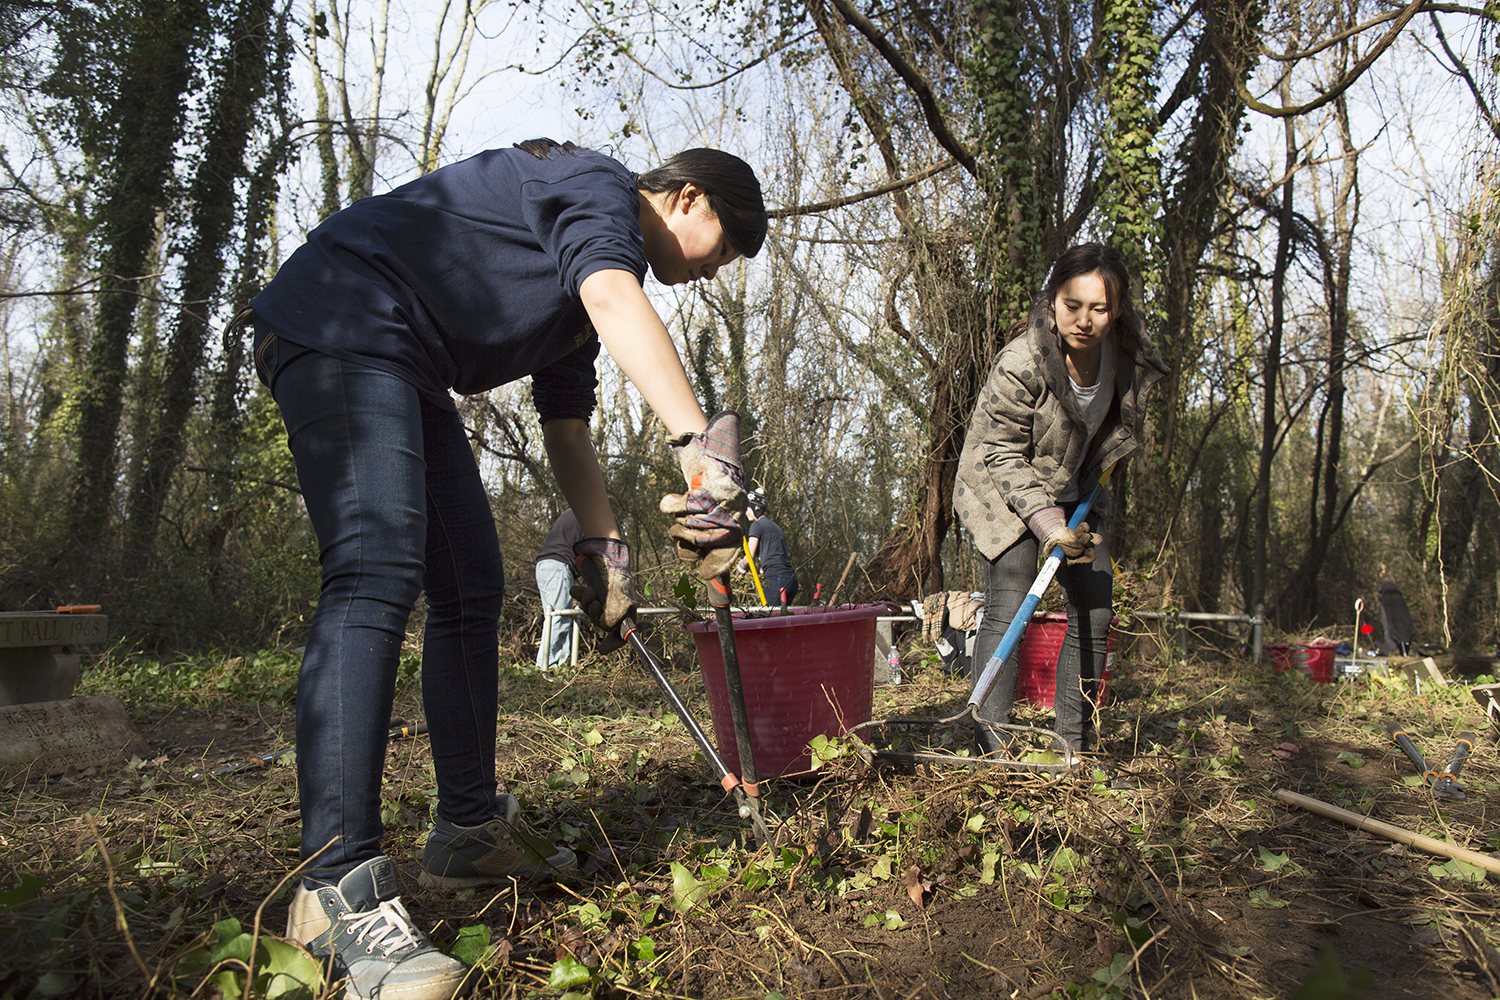 Alpha Phi Omega volunteers at work, East End Cemetery work day, January 2015.©brianpalmer.photos 2015